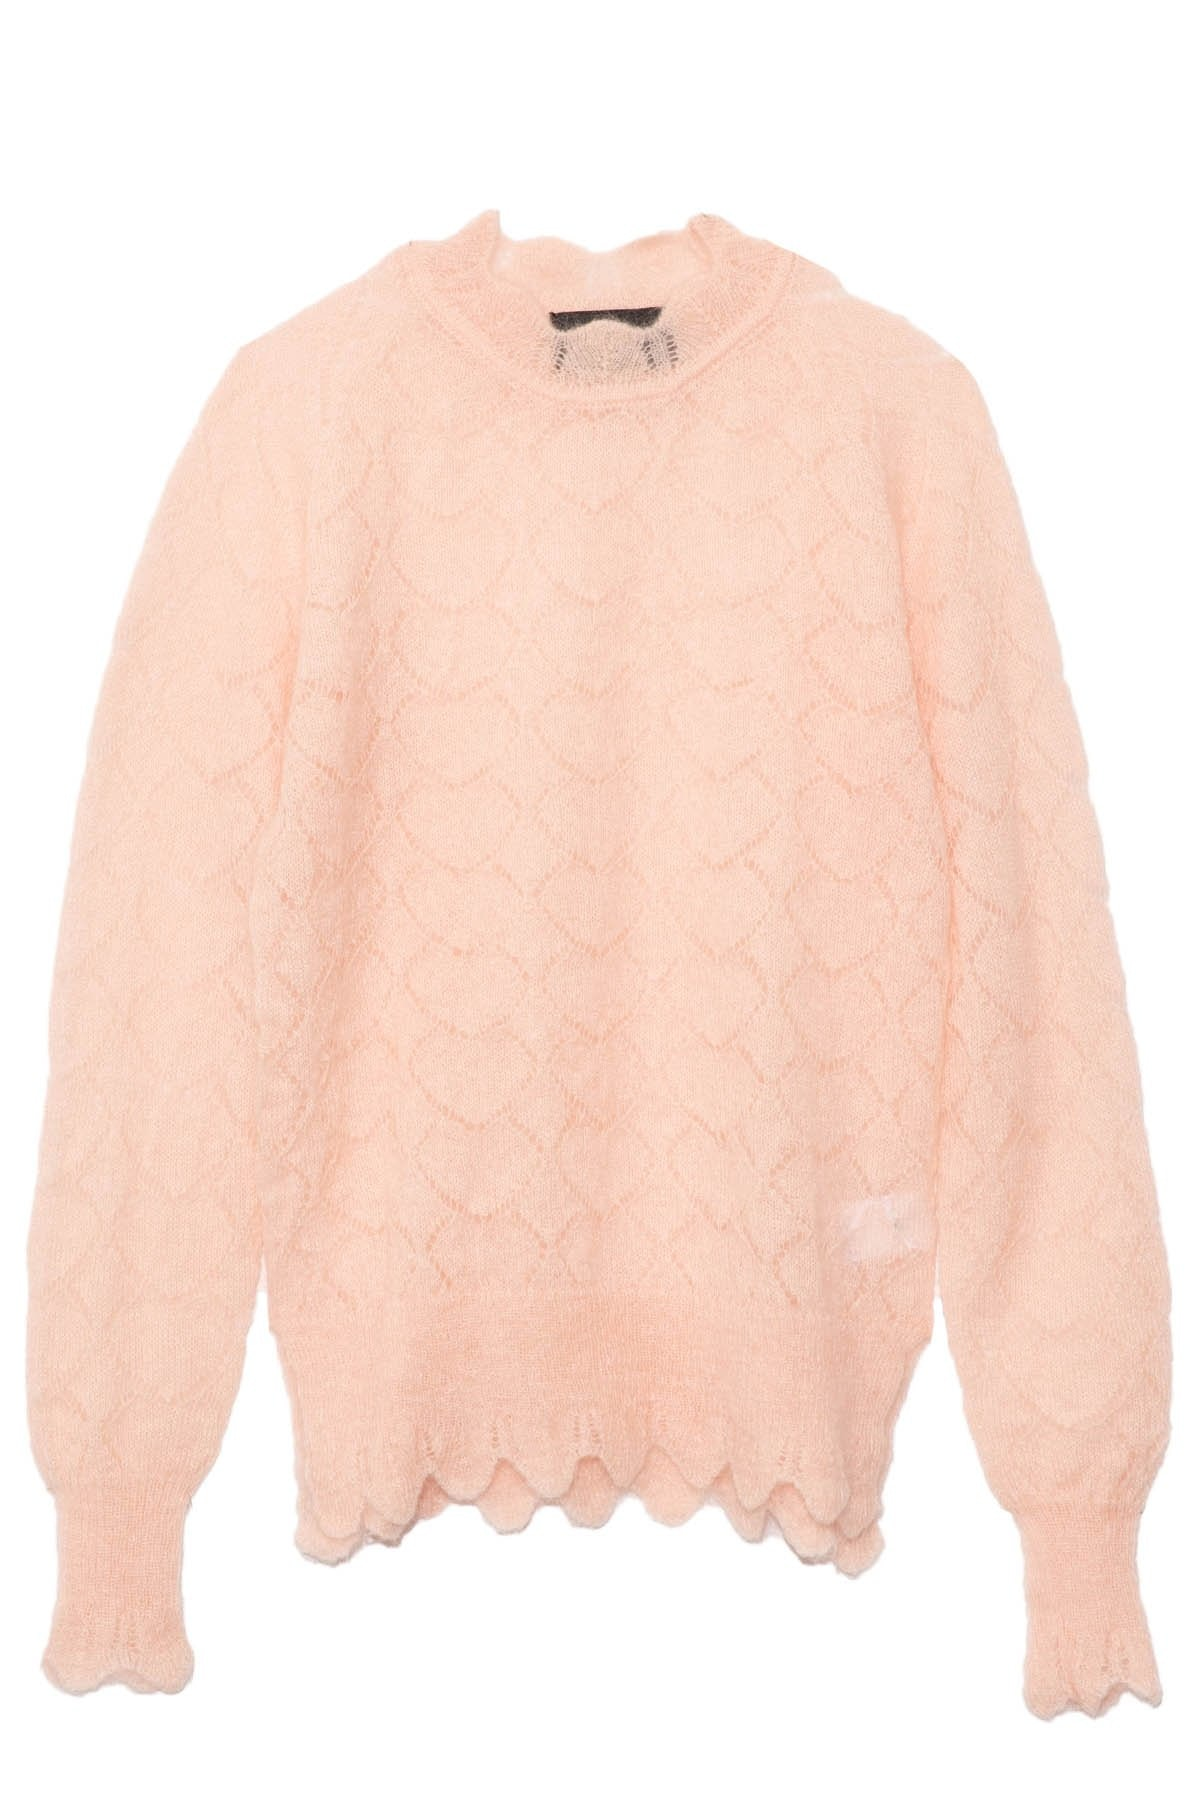 Long Sleeve Heart Stitch Jumper in Baby Pink: image 1